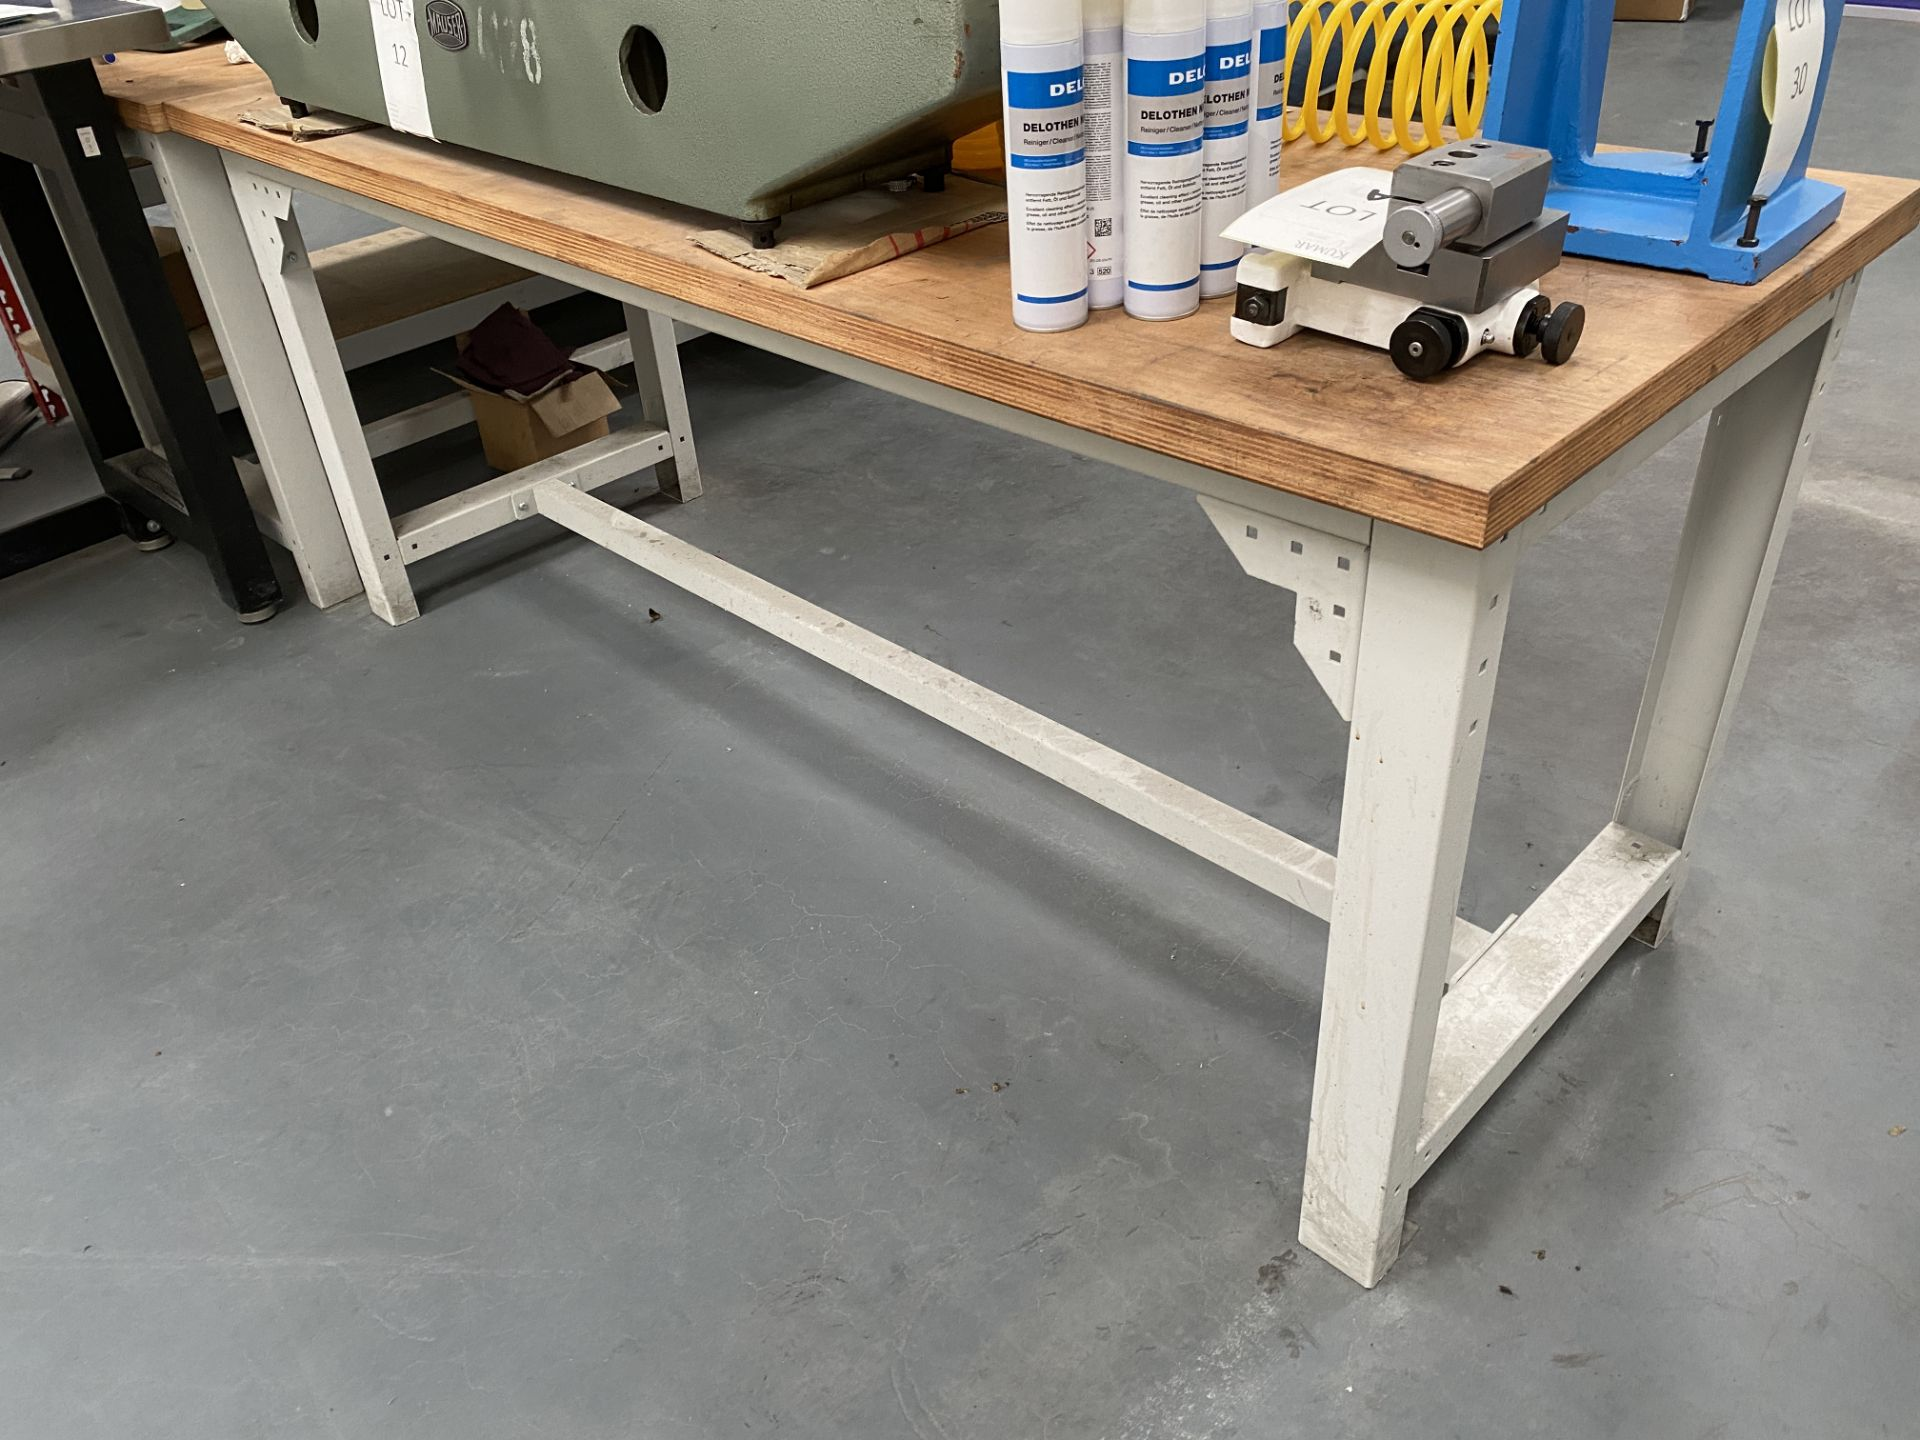 Workbench Size 2m X 0.76m X 0.84m (Does Not Include Contents) - Image 3 of 4